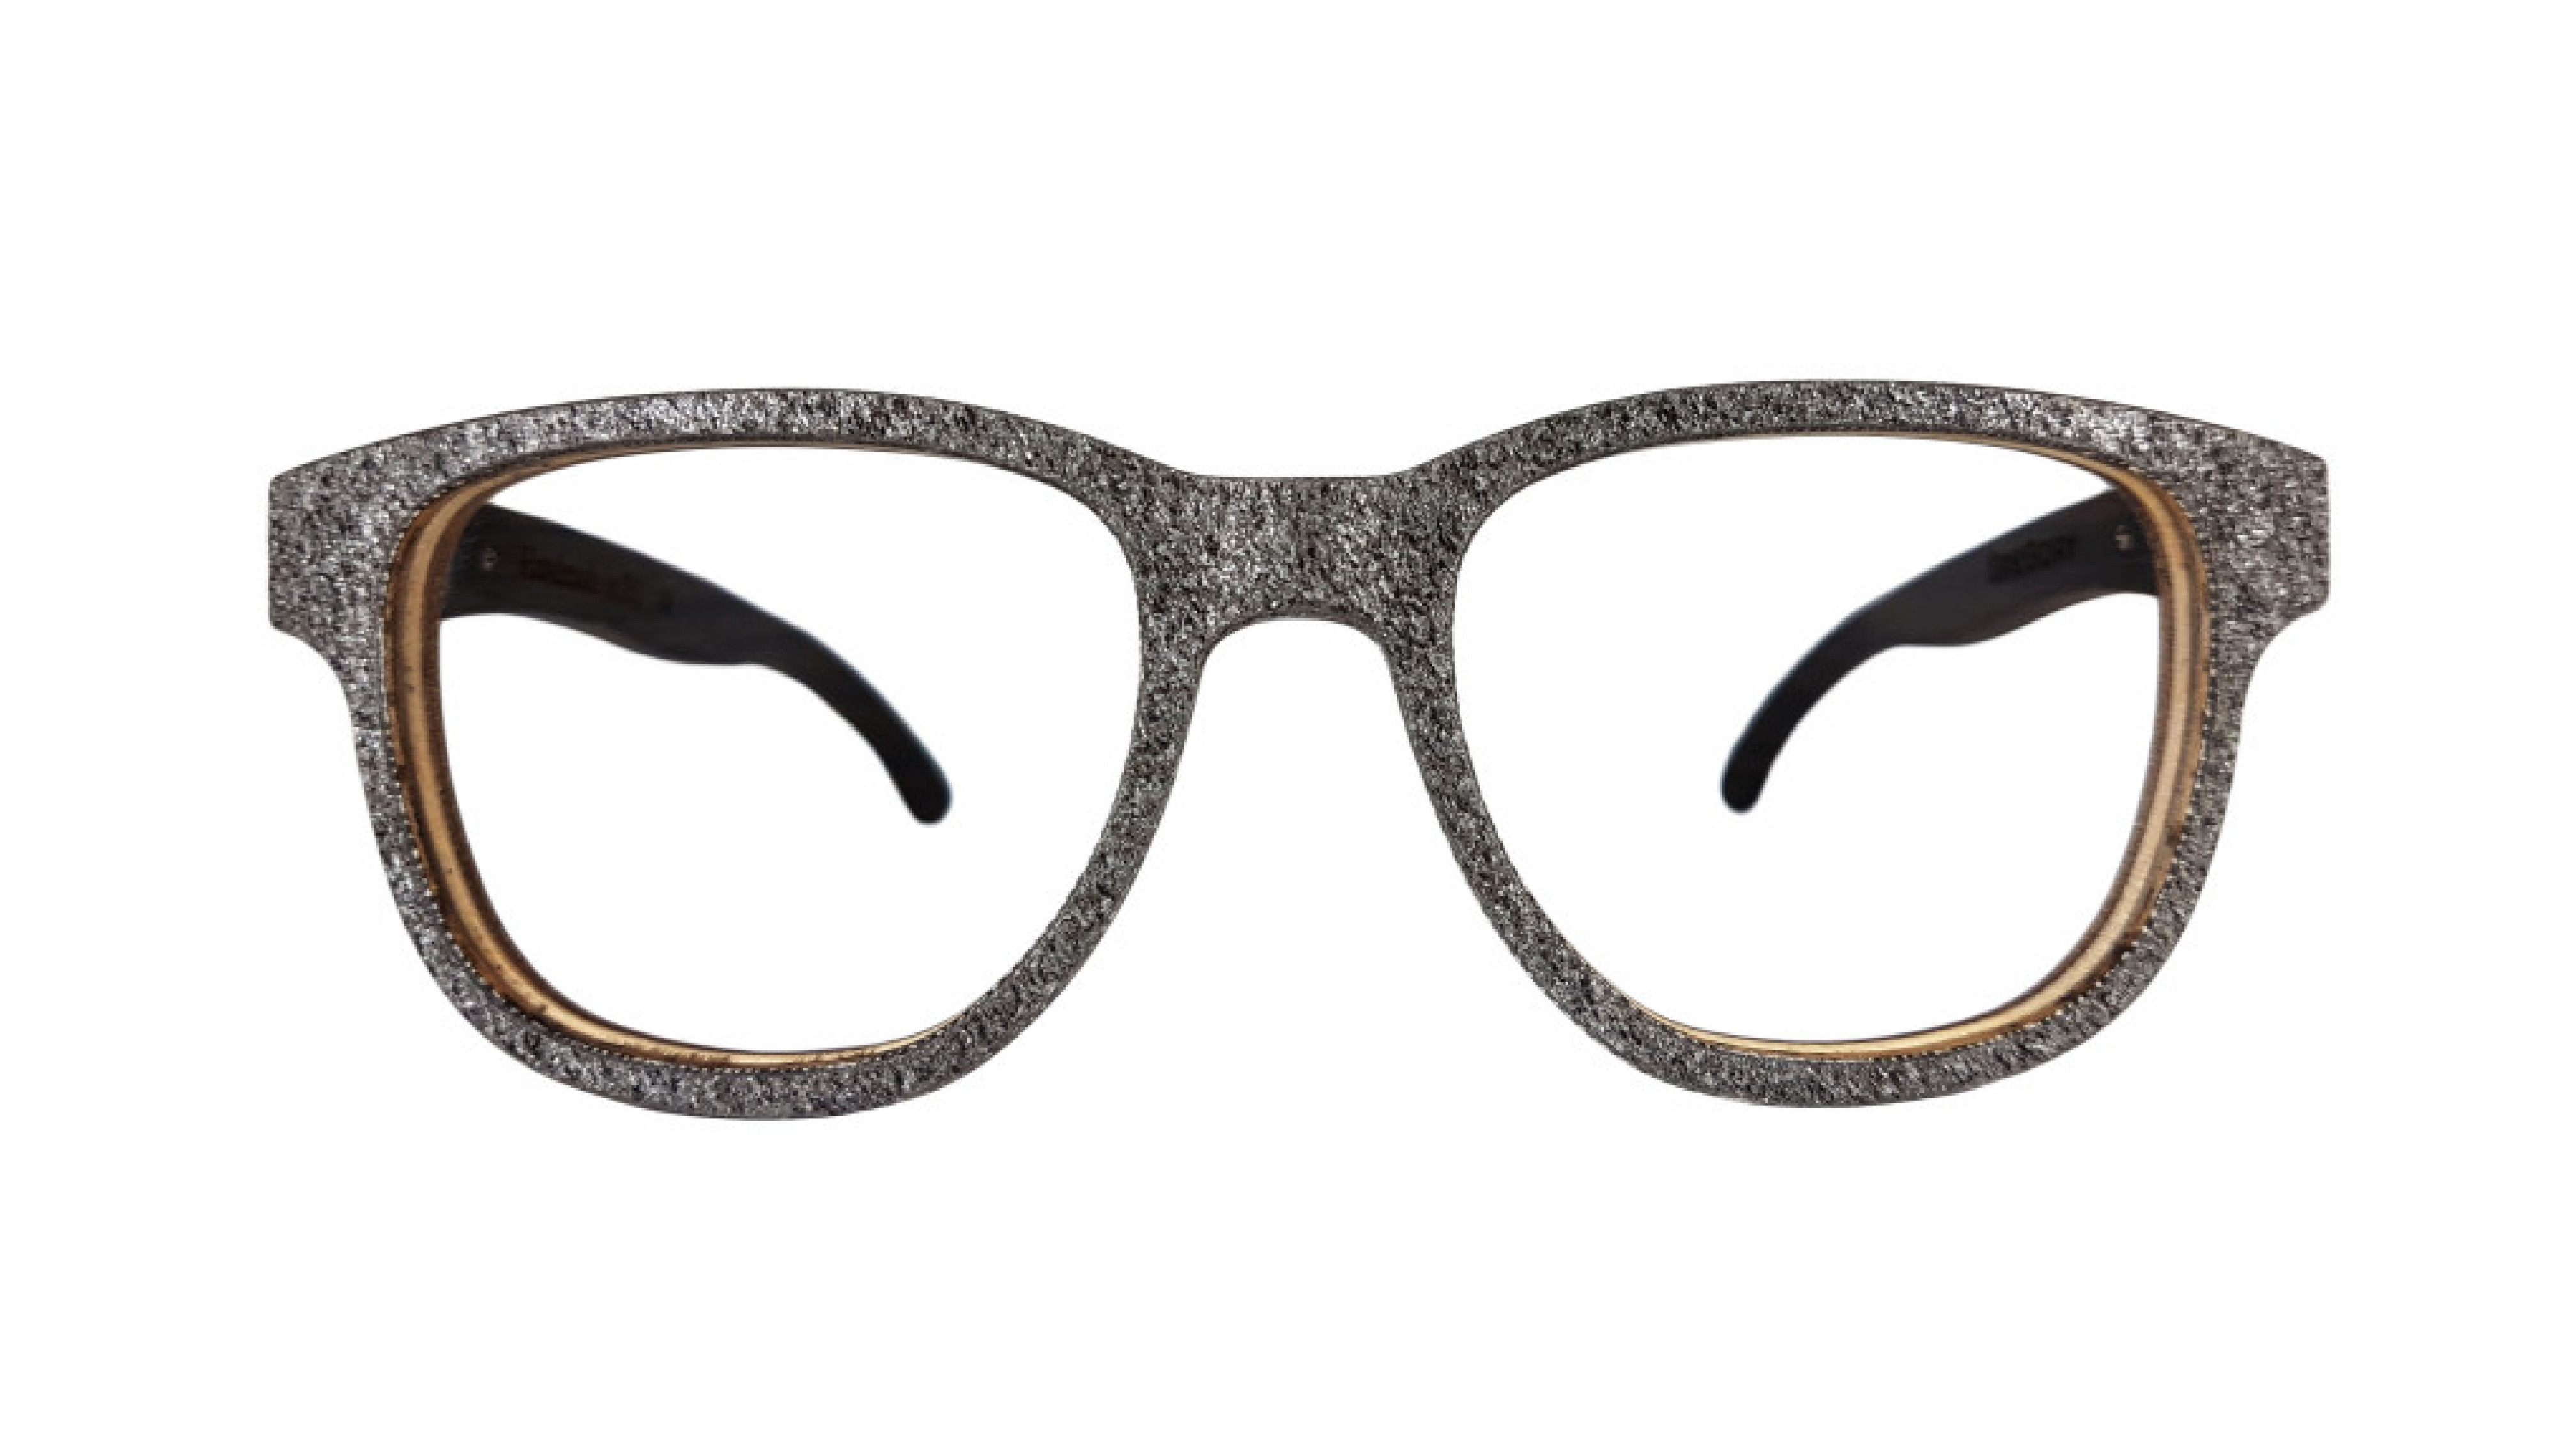 GG Spectacles